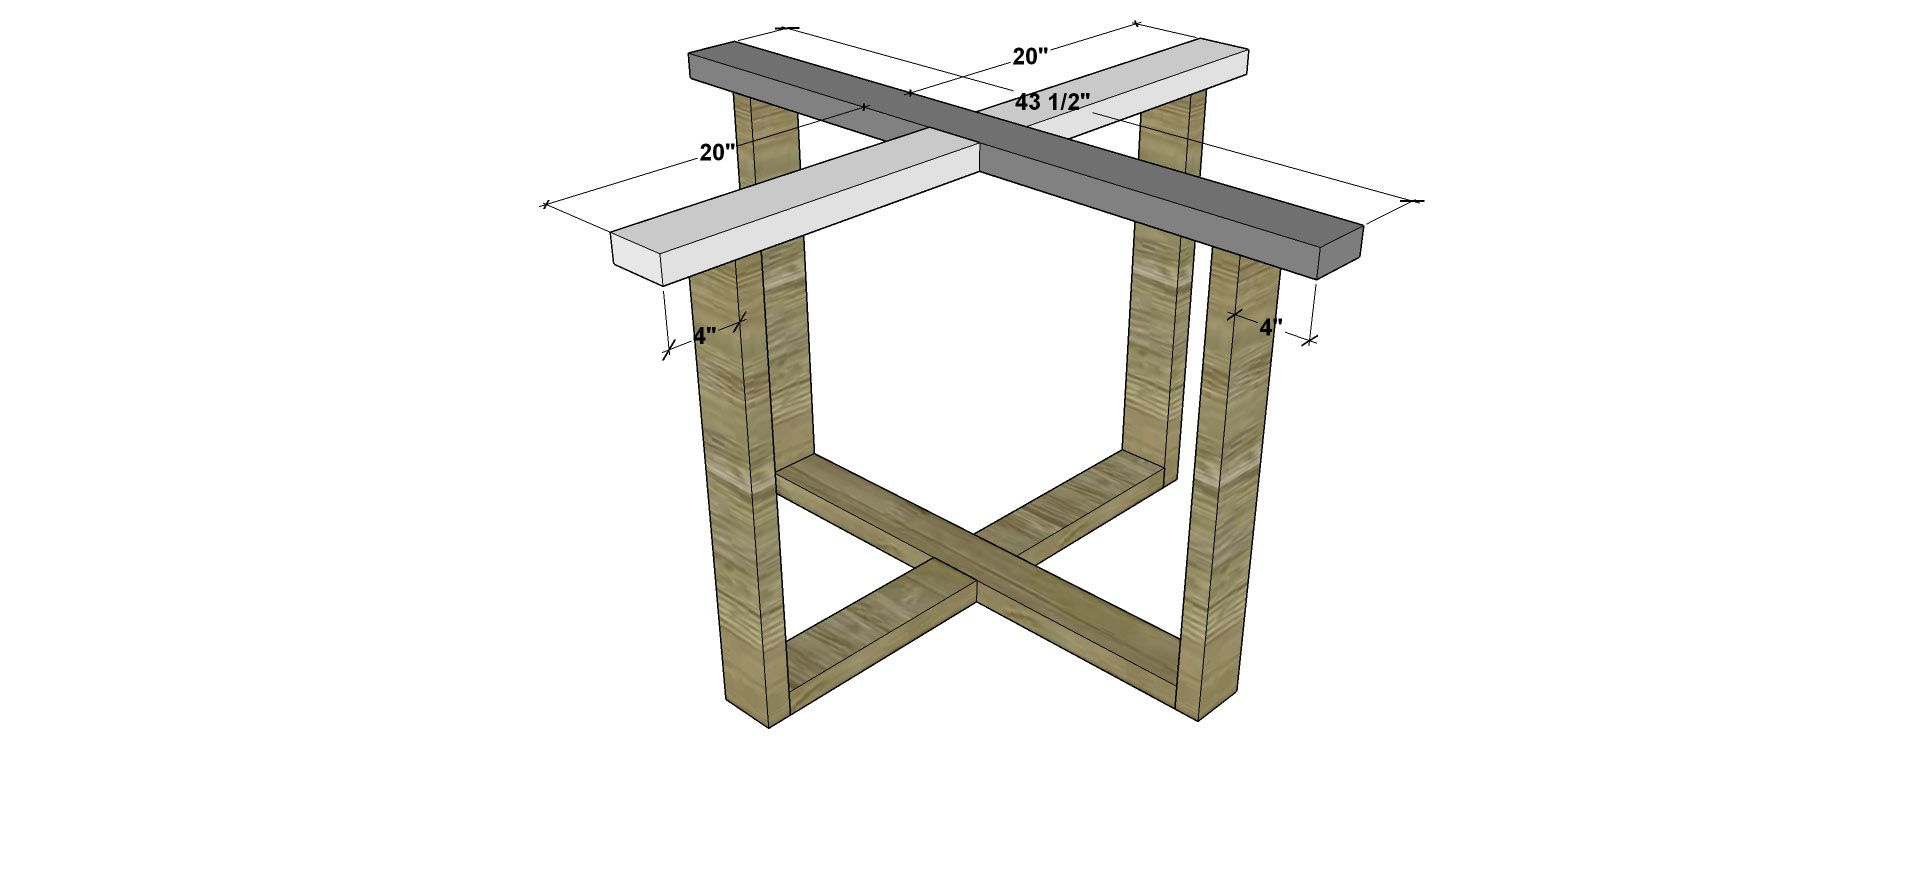 Diy Round Dining Table Plans Attaching The Base For Free Diy Furniture Plans And